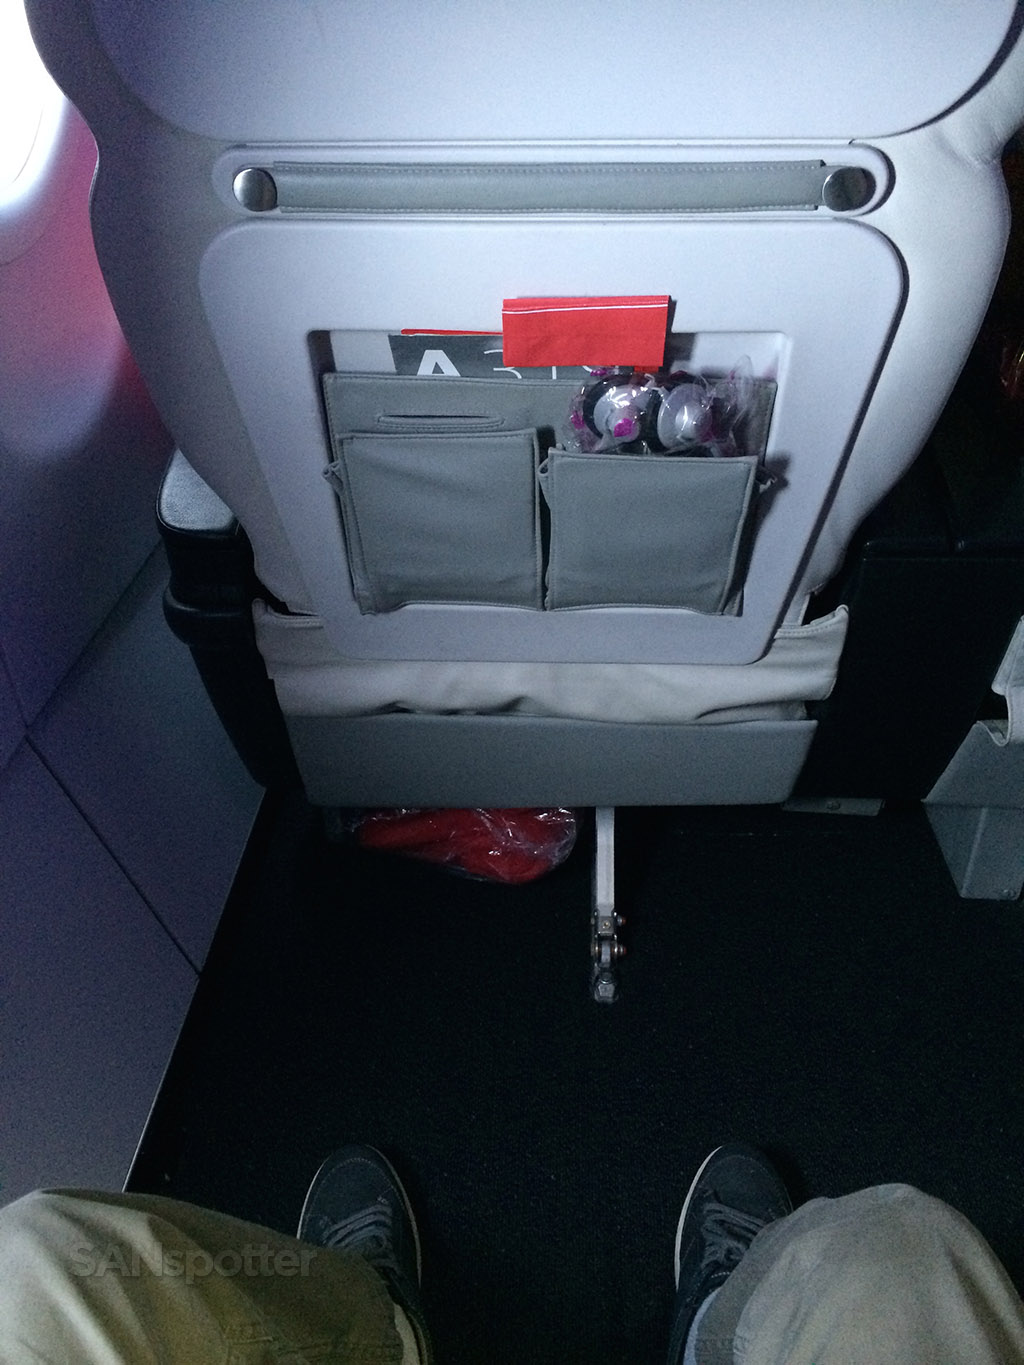 second row legroom up in first class